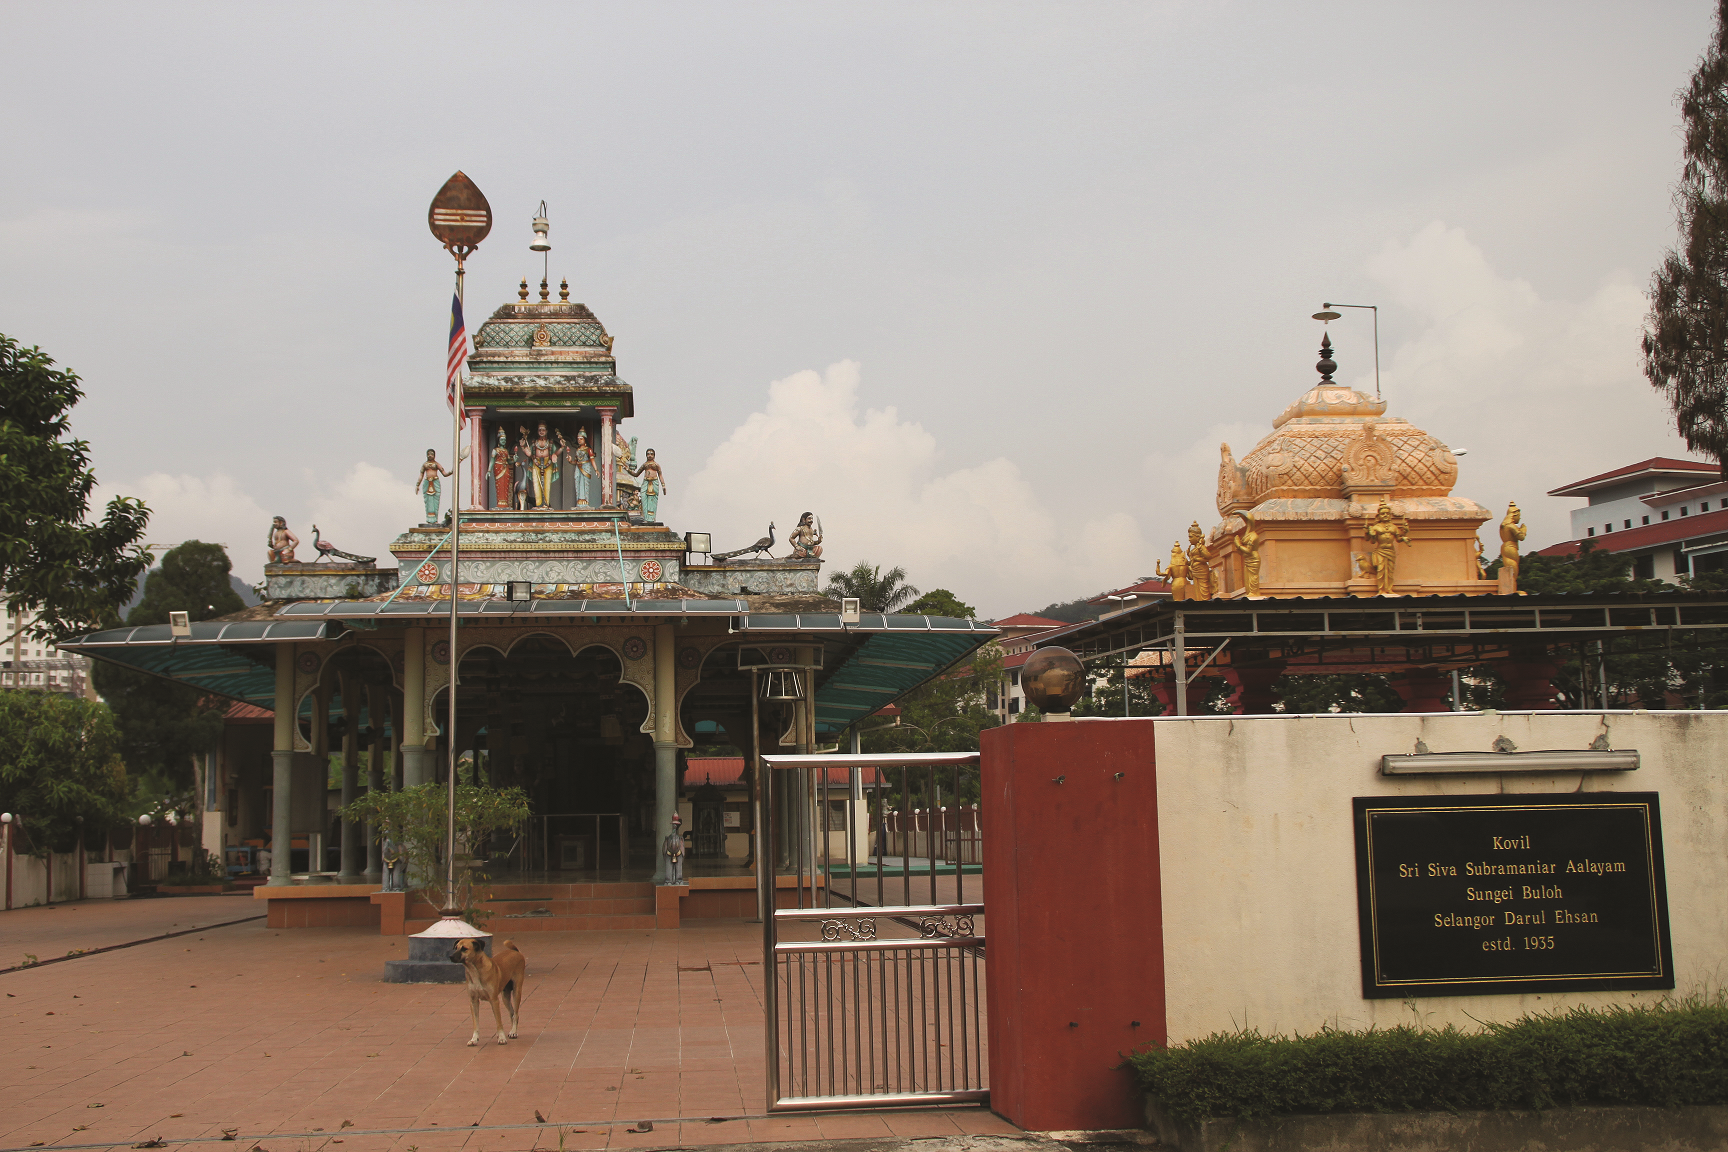 Hindu Temple at the East Section. (photo by Tan Ean Nee)